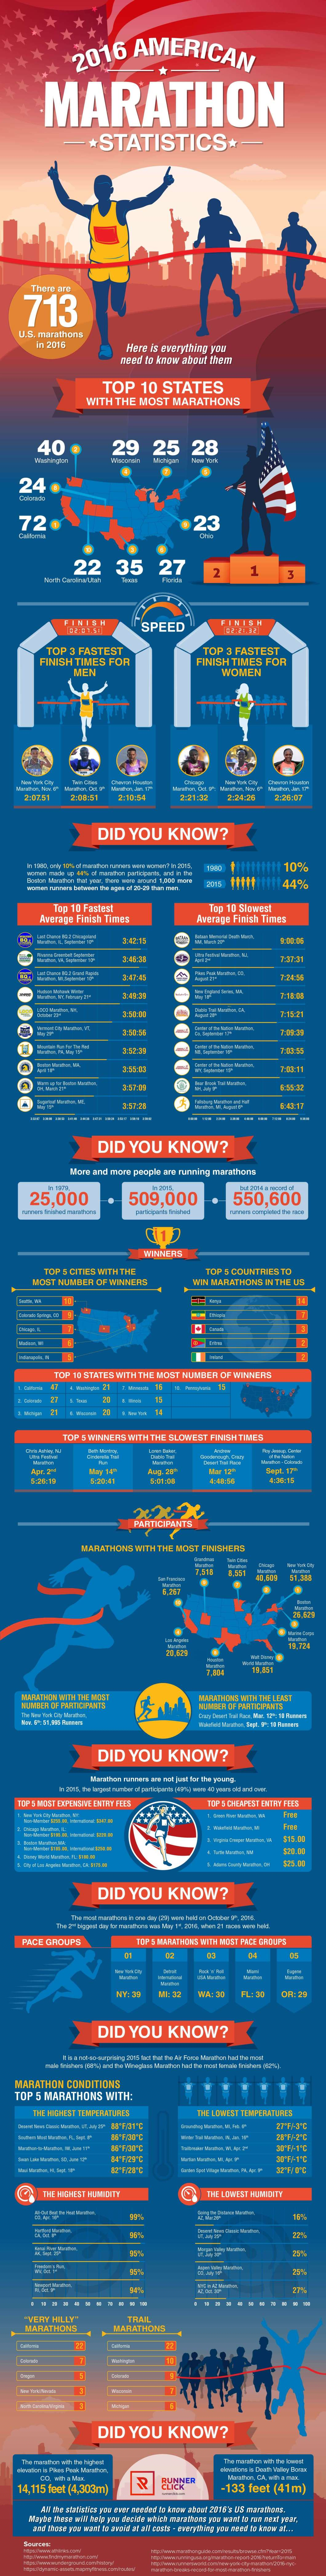 Everything You Need About The 2016 Marathon - Infographic